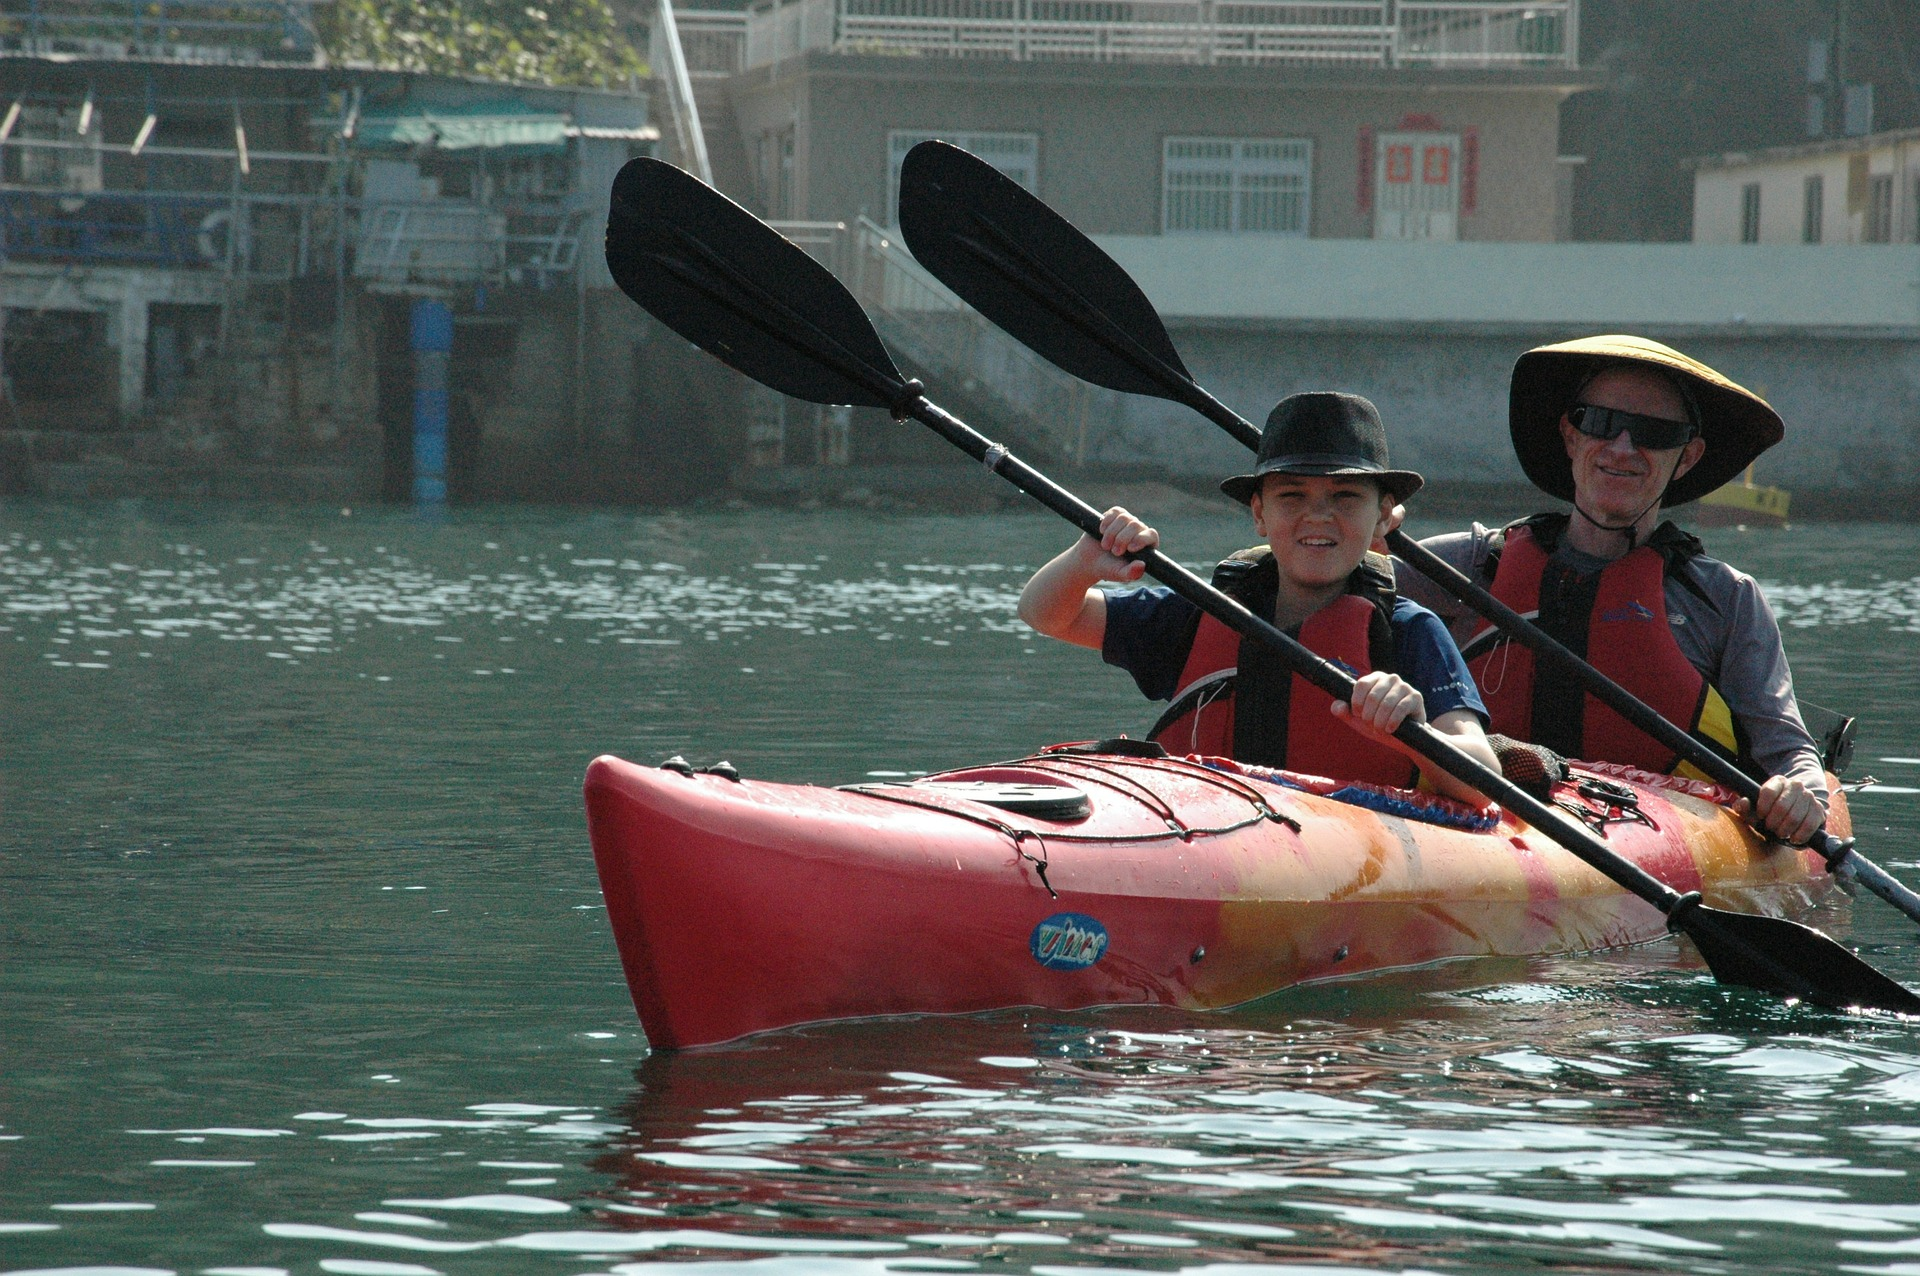 Father and son bonding is to paddle the kayak while wearing a hats and the best life jackets for kayaking